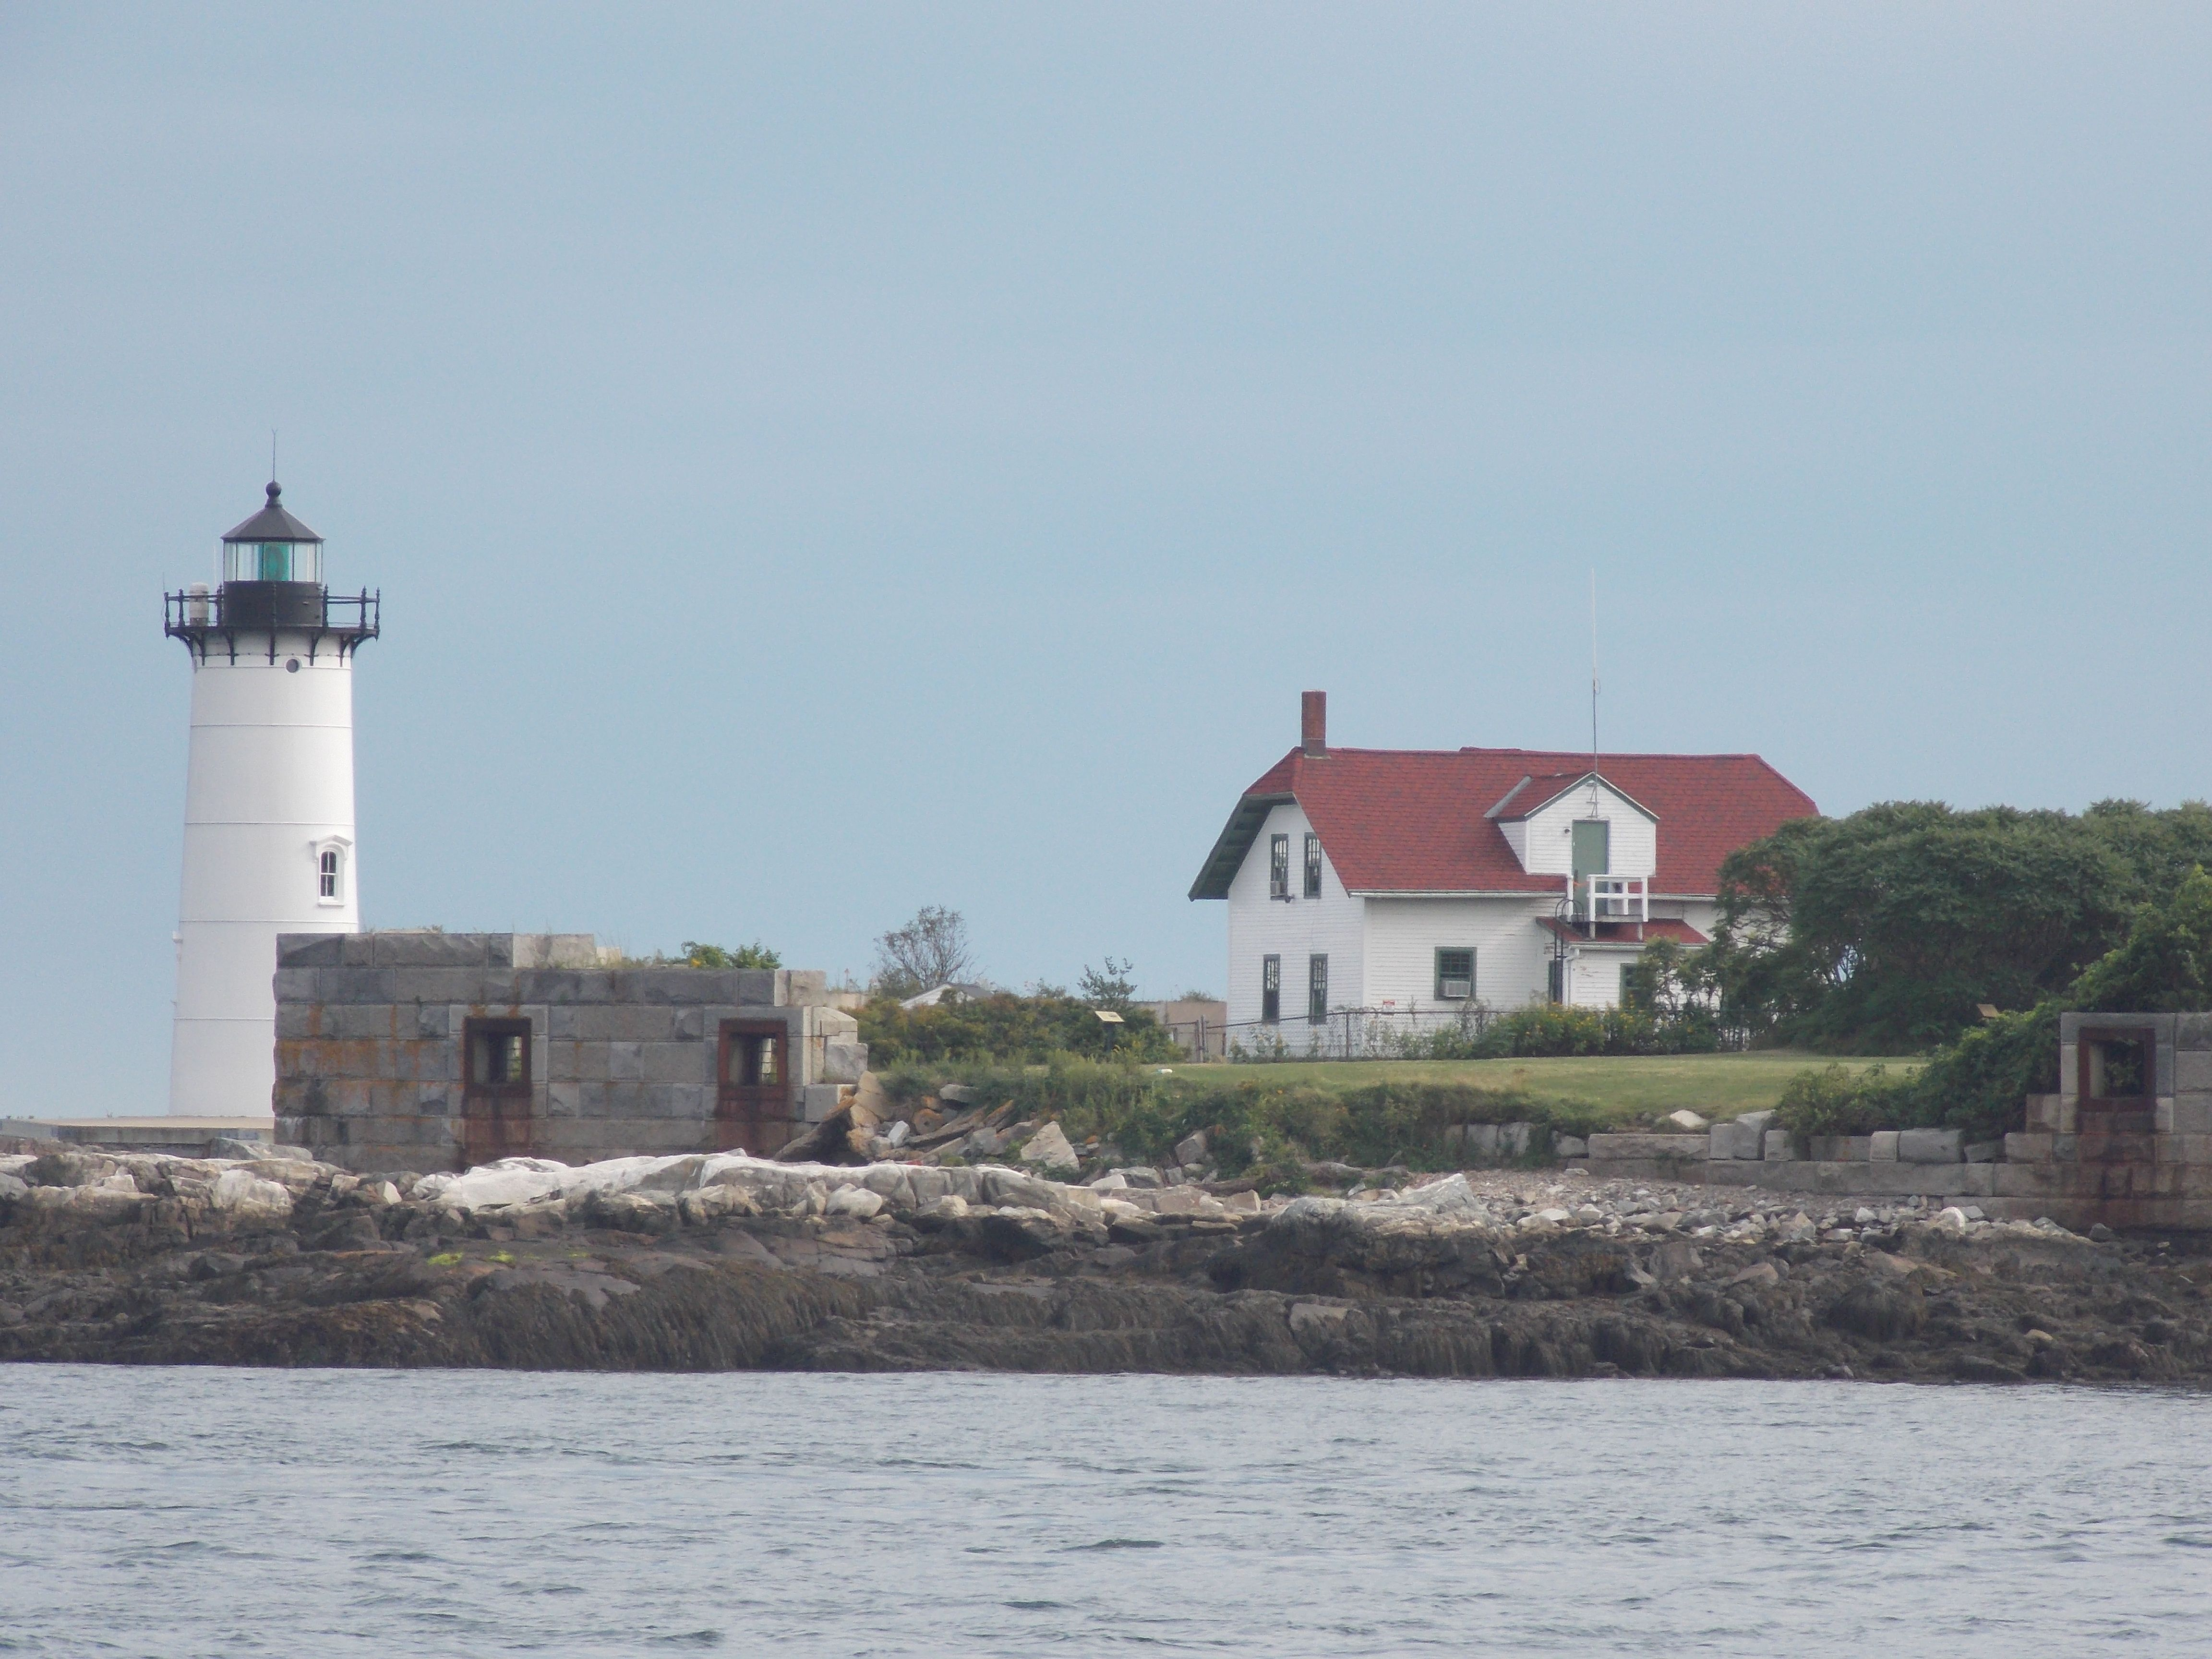 In 1771, Royal Governor John Wentworth had a lighthouse built here on Fort Point. Constructed of wood and hexagonal in shape, the Portsmouth Light was the tenth to be built in North America. One of the duties of the lighthouse keeper was to keep the wicks of the oil lanterns trimmed so the light wouldn't die out.